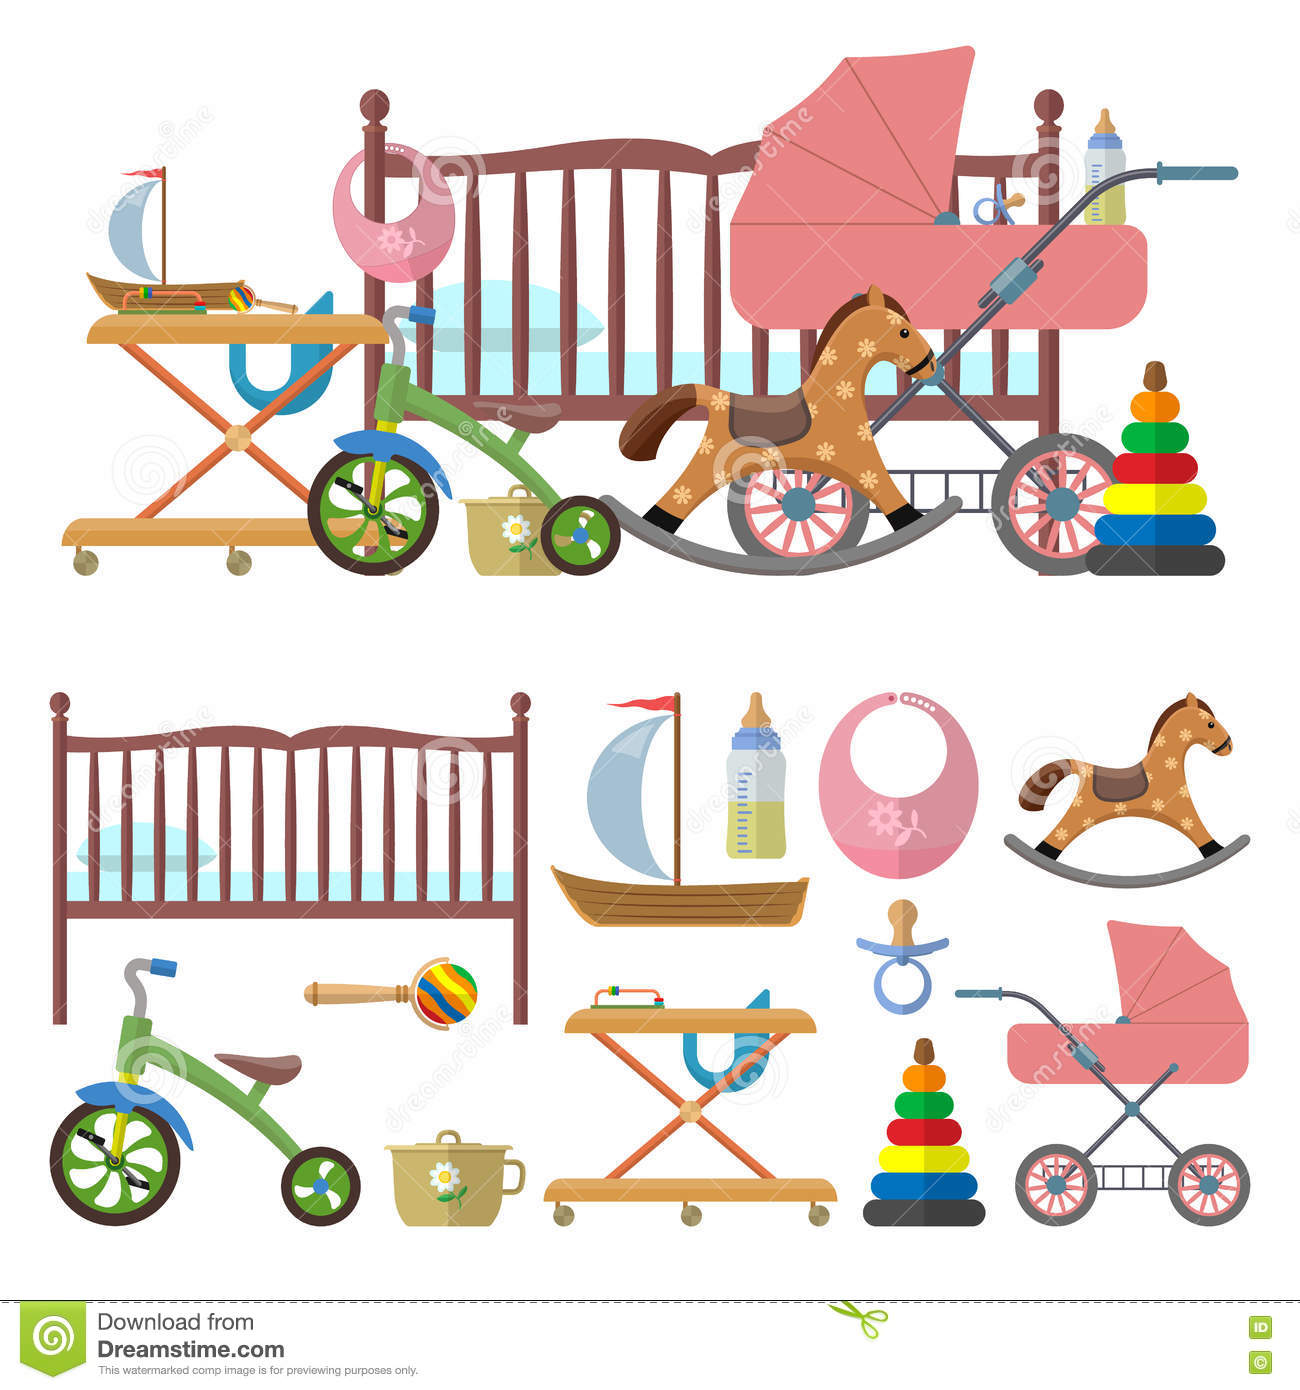 Kids Room Decoration Space Theme Vector Illustration: Baby Room Interior And Vector Set Of Toys For Kids